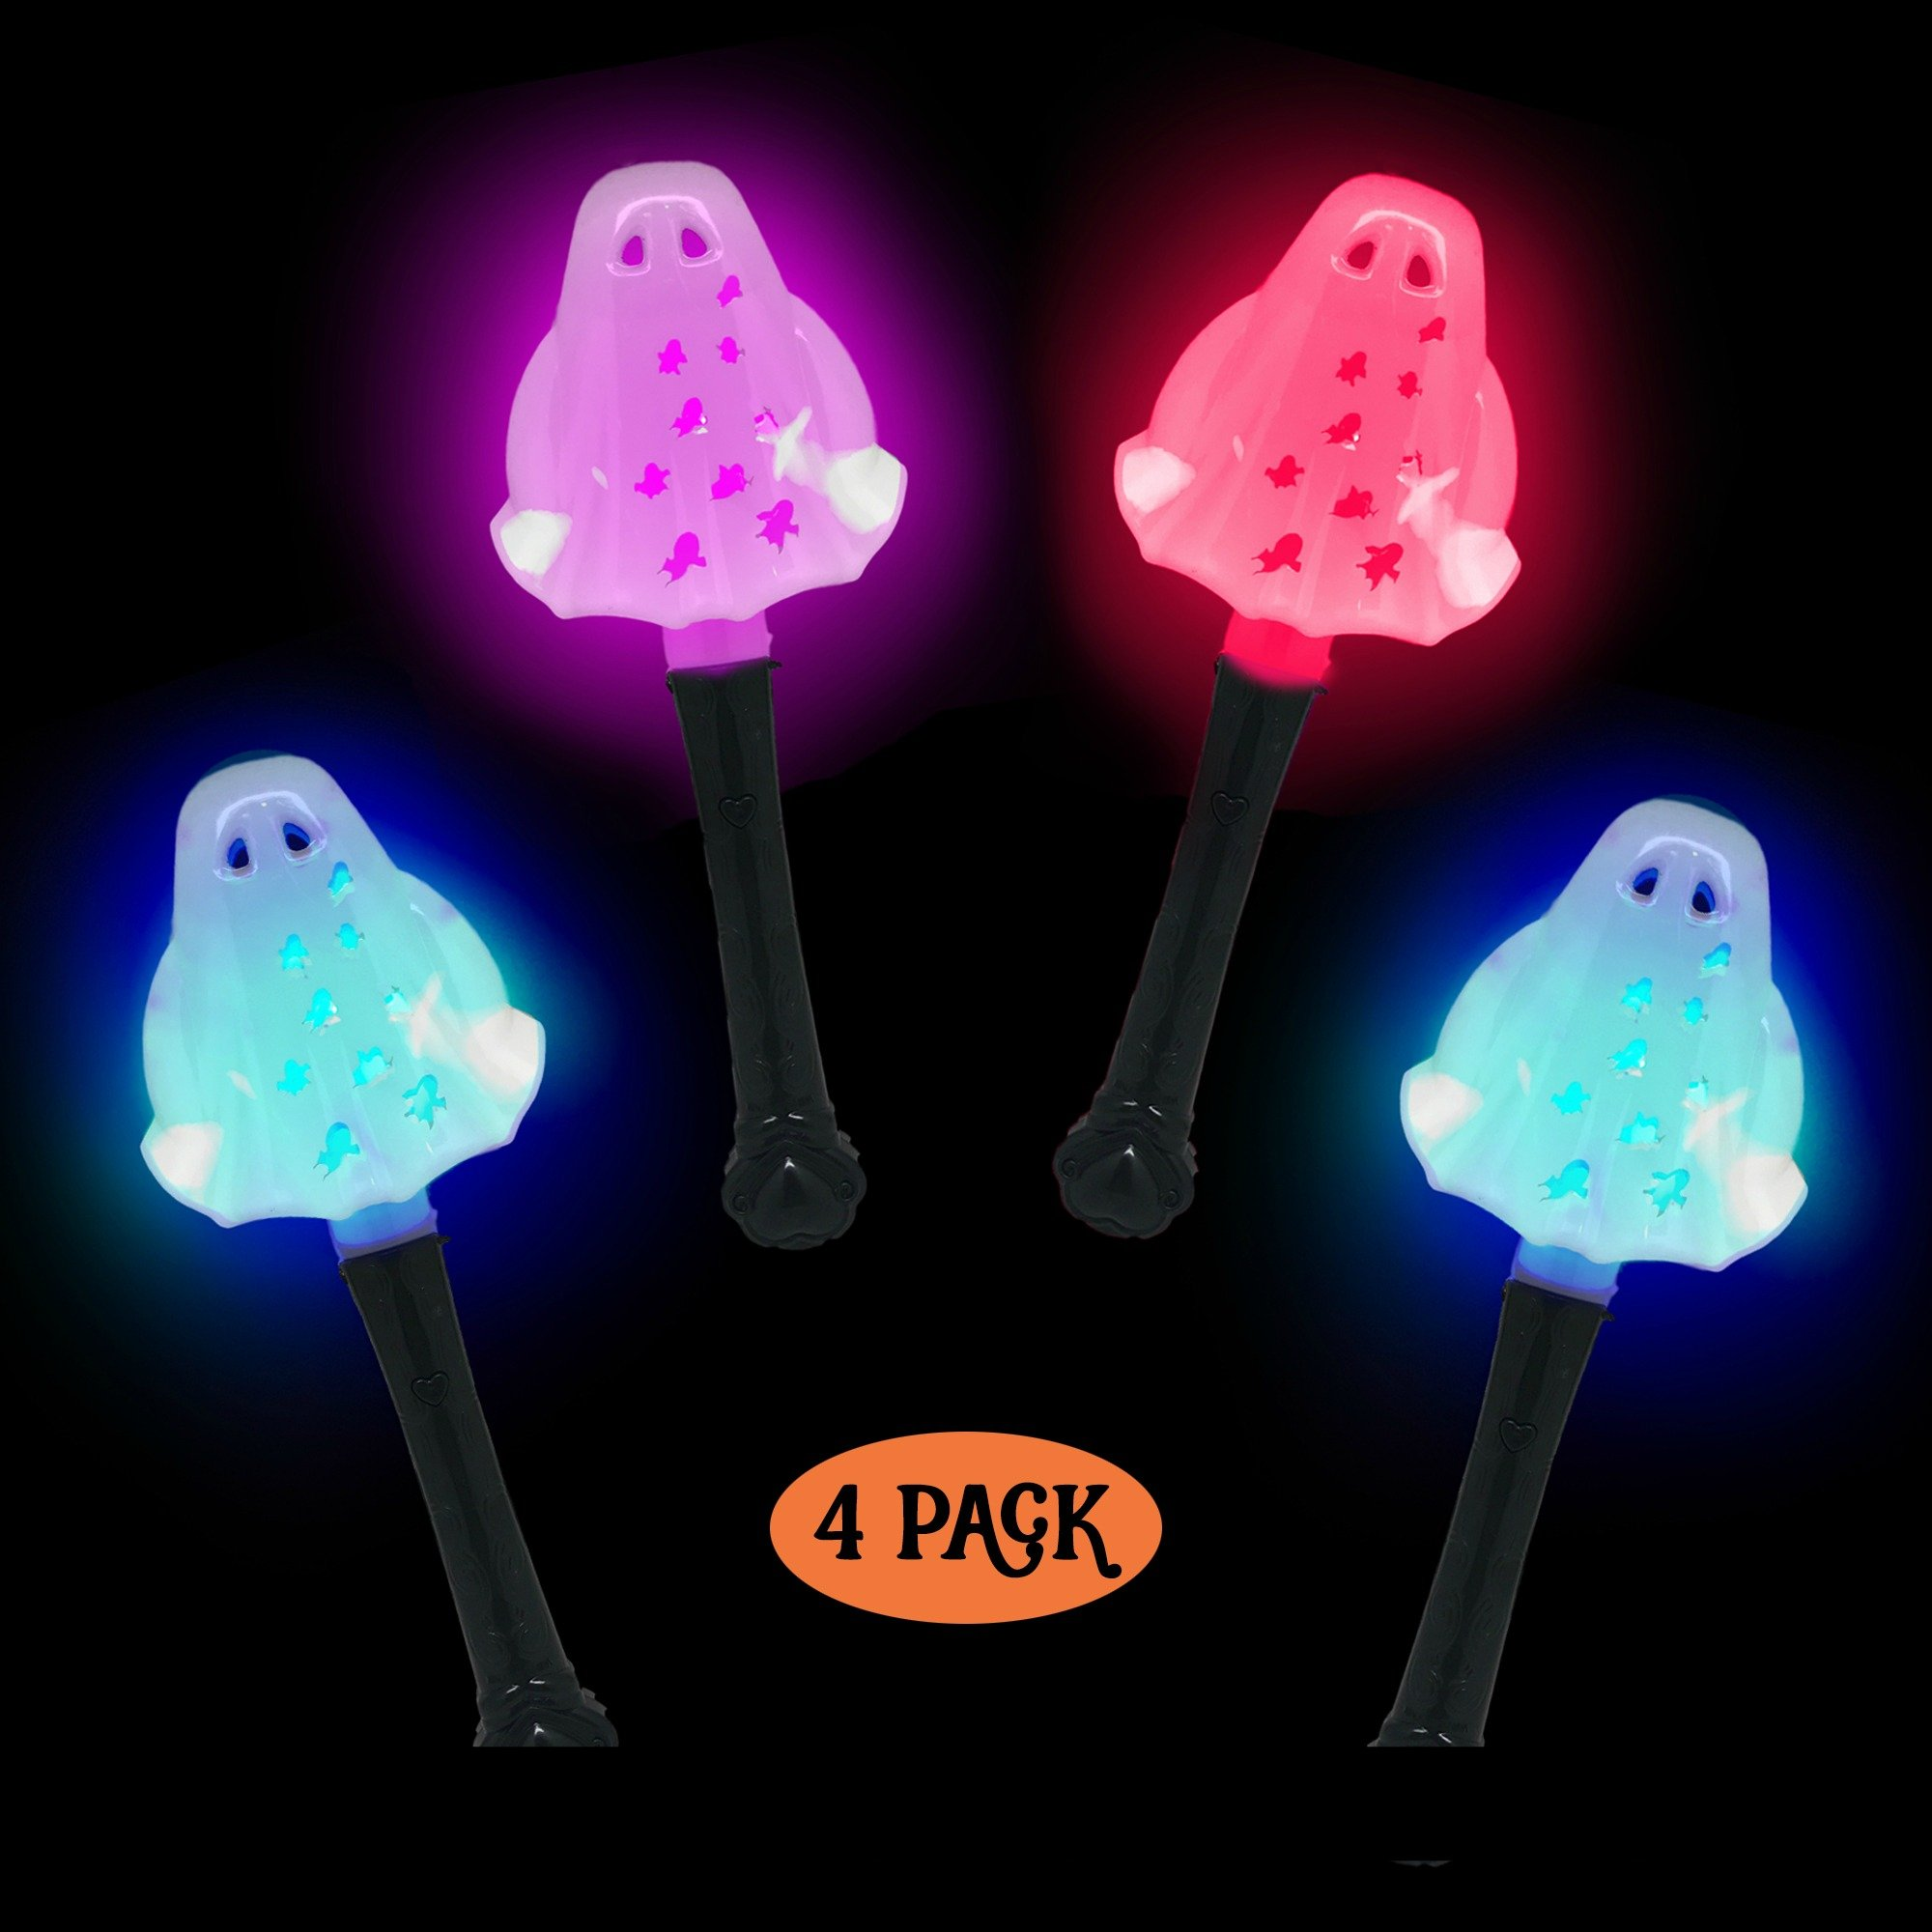 Simply Charmed Halloween Party Favors for Kids 4 Pack of LED Ghosts - Great Toys for Goody Bags